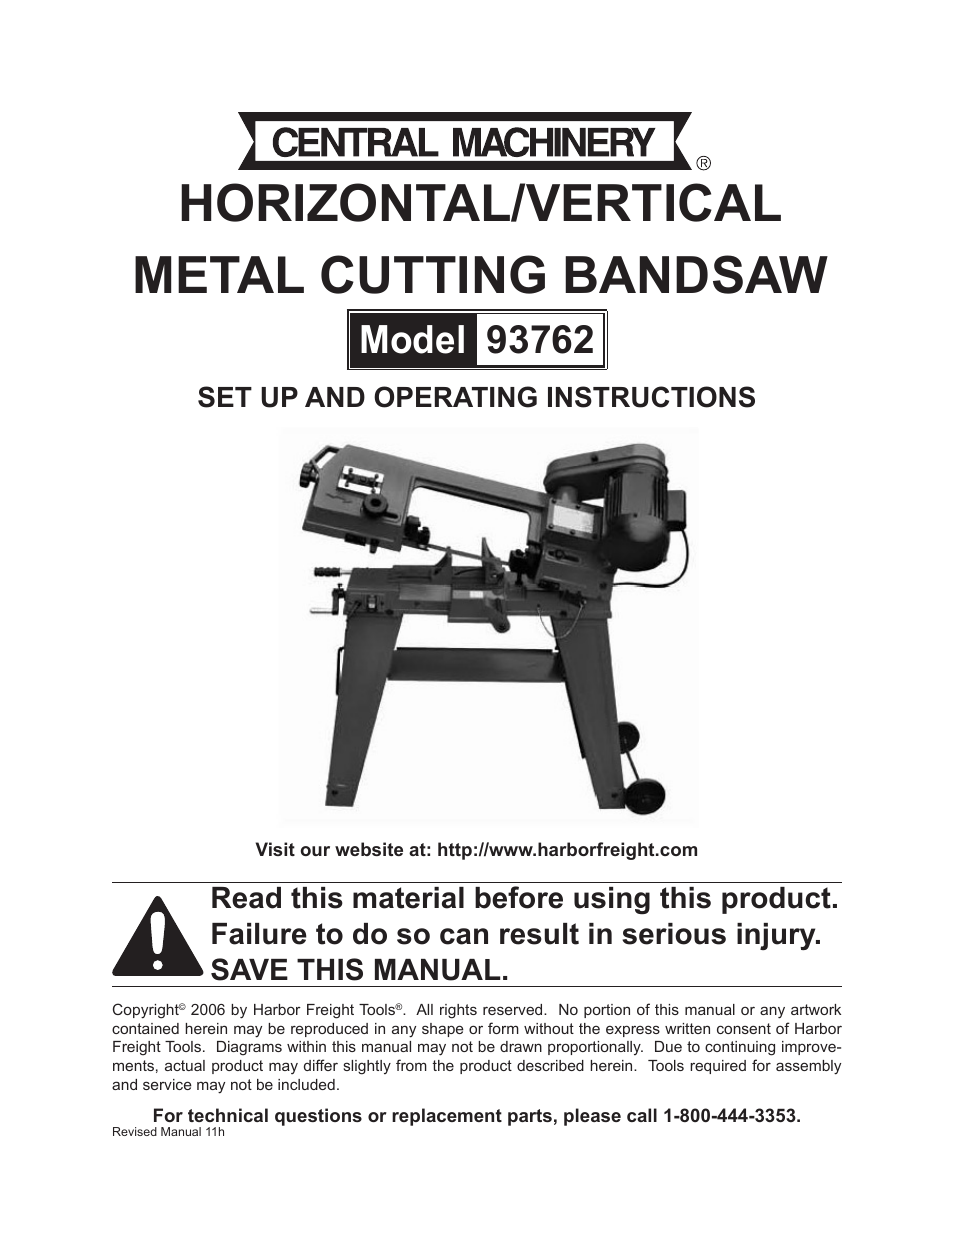 harbor freight tools metal cutting bandsaw 93762 user manual 29 pages rh manualsdir com harbor freight band saw manual 60500 harbor freight portable bandsaw parts